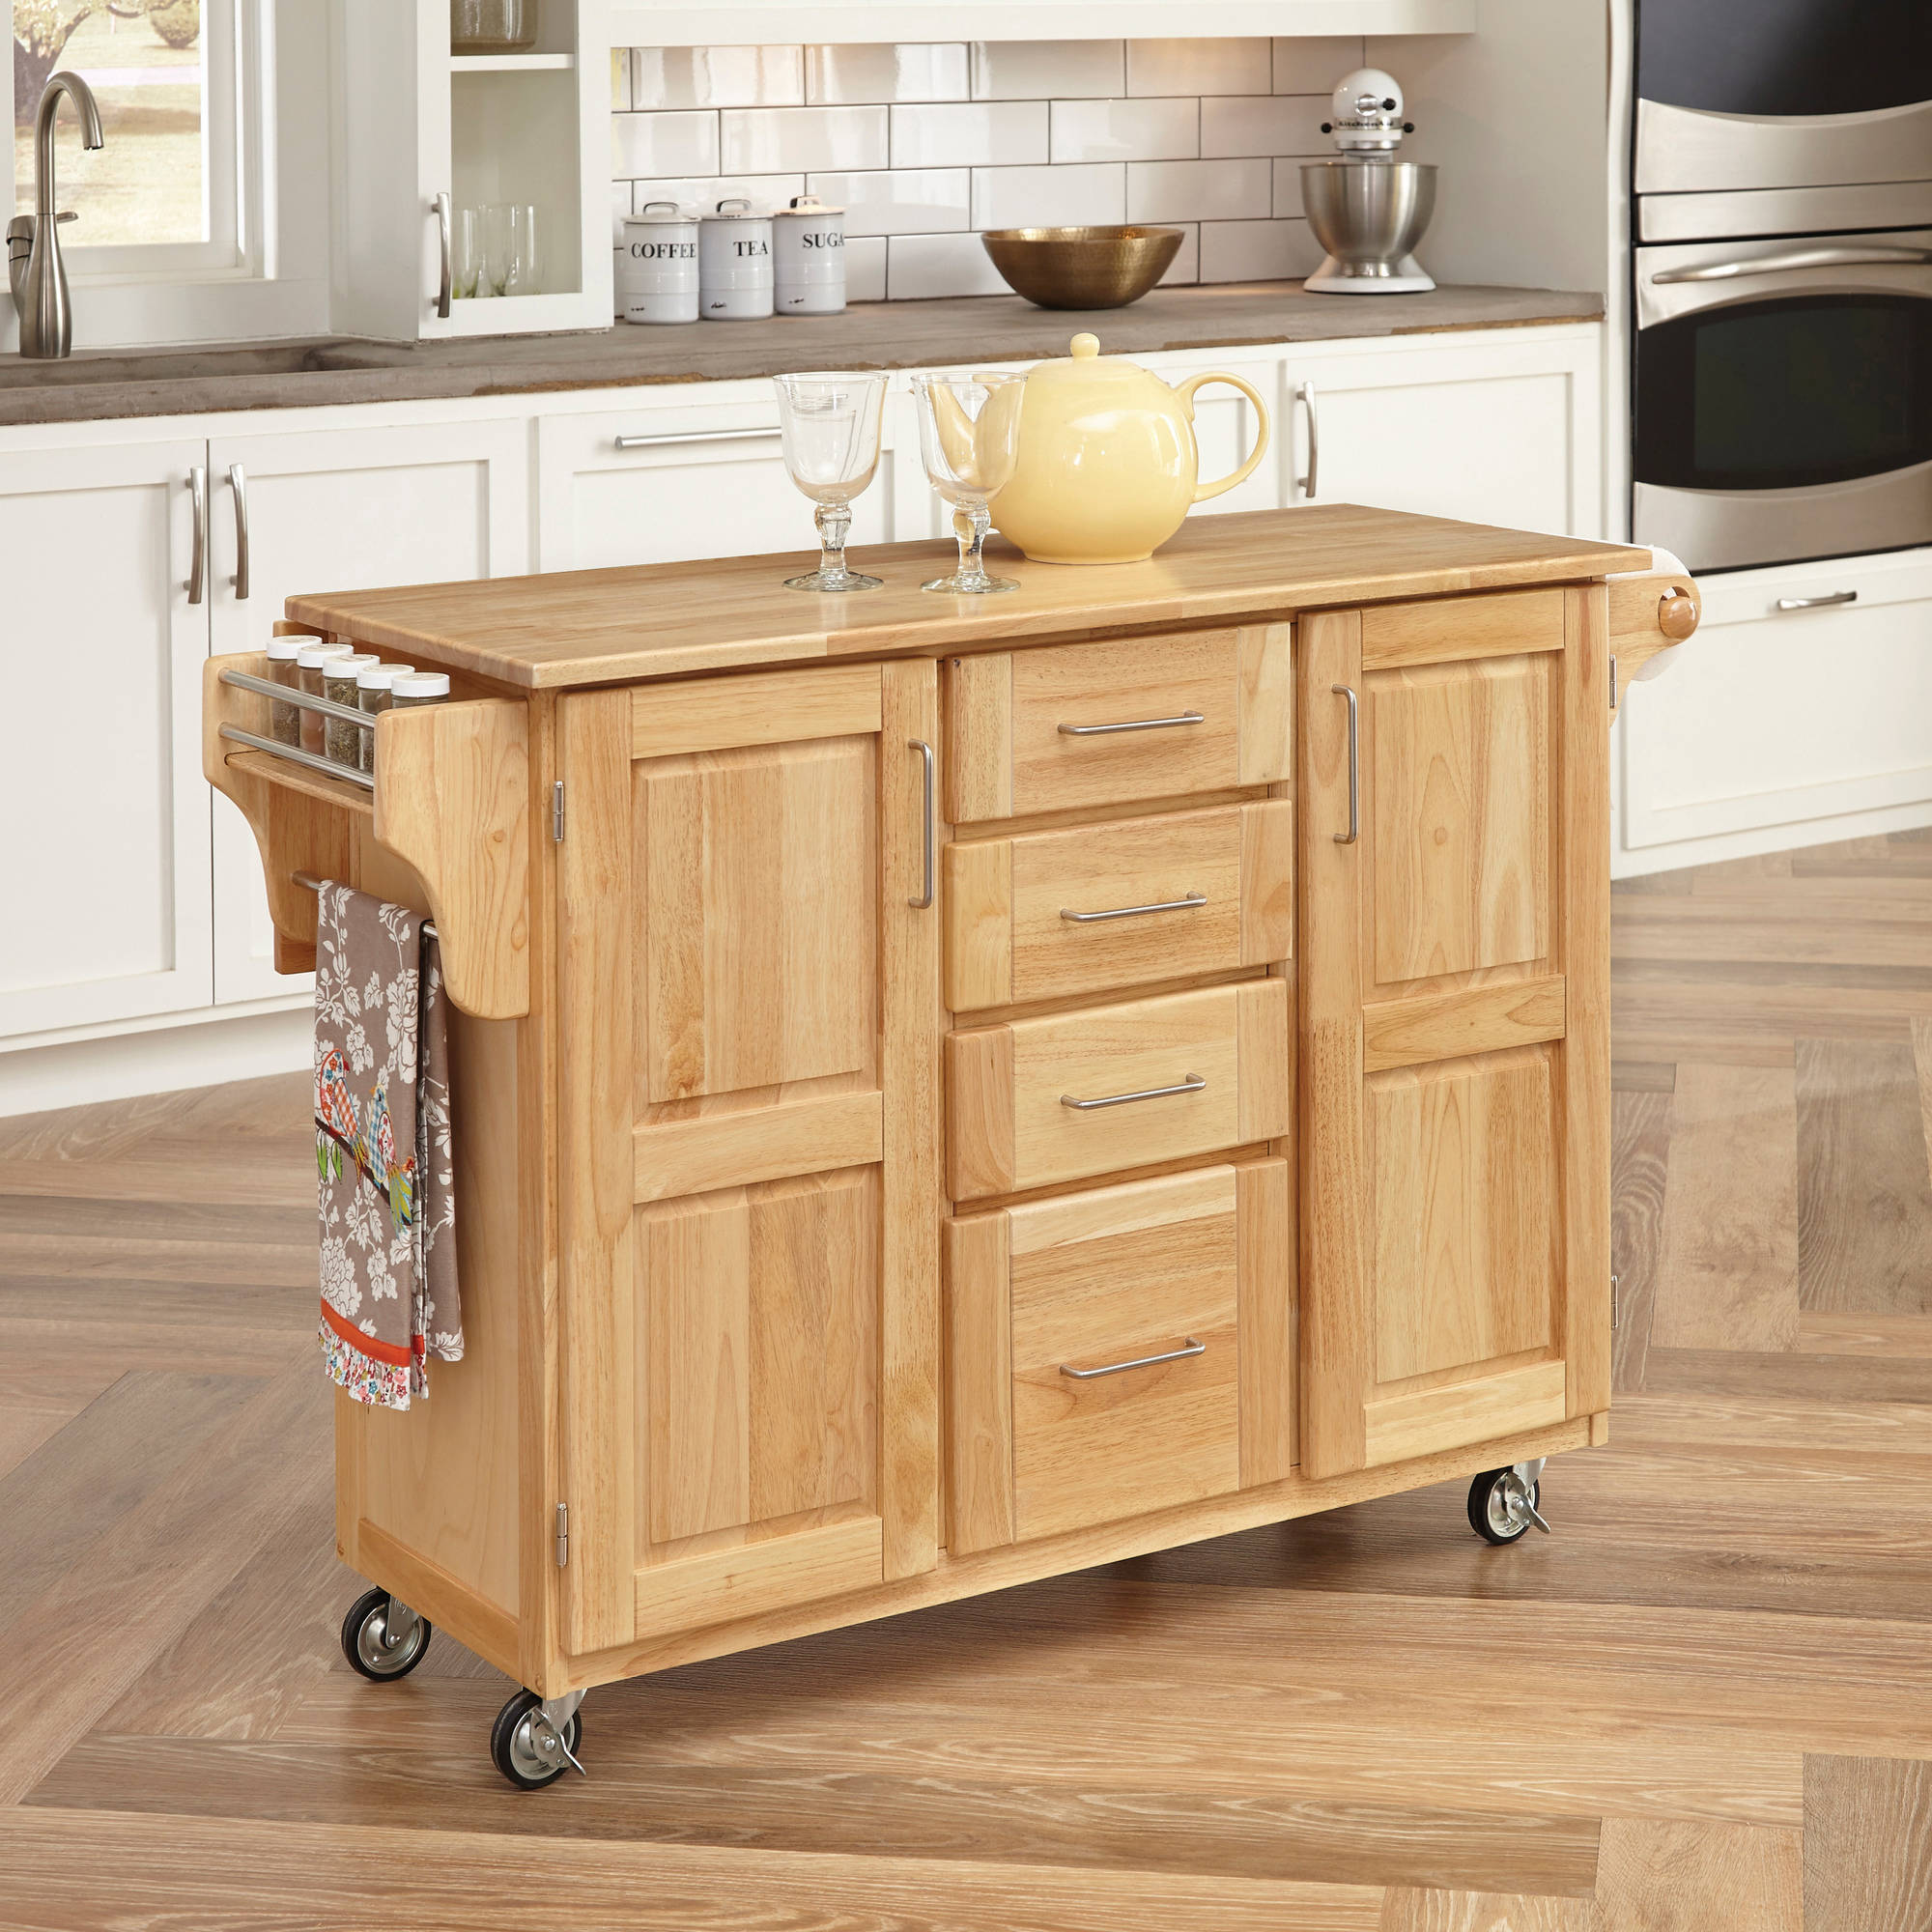 Natural Breakfast Bar Kitchen Cart with Wood Top